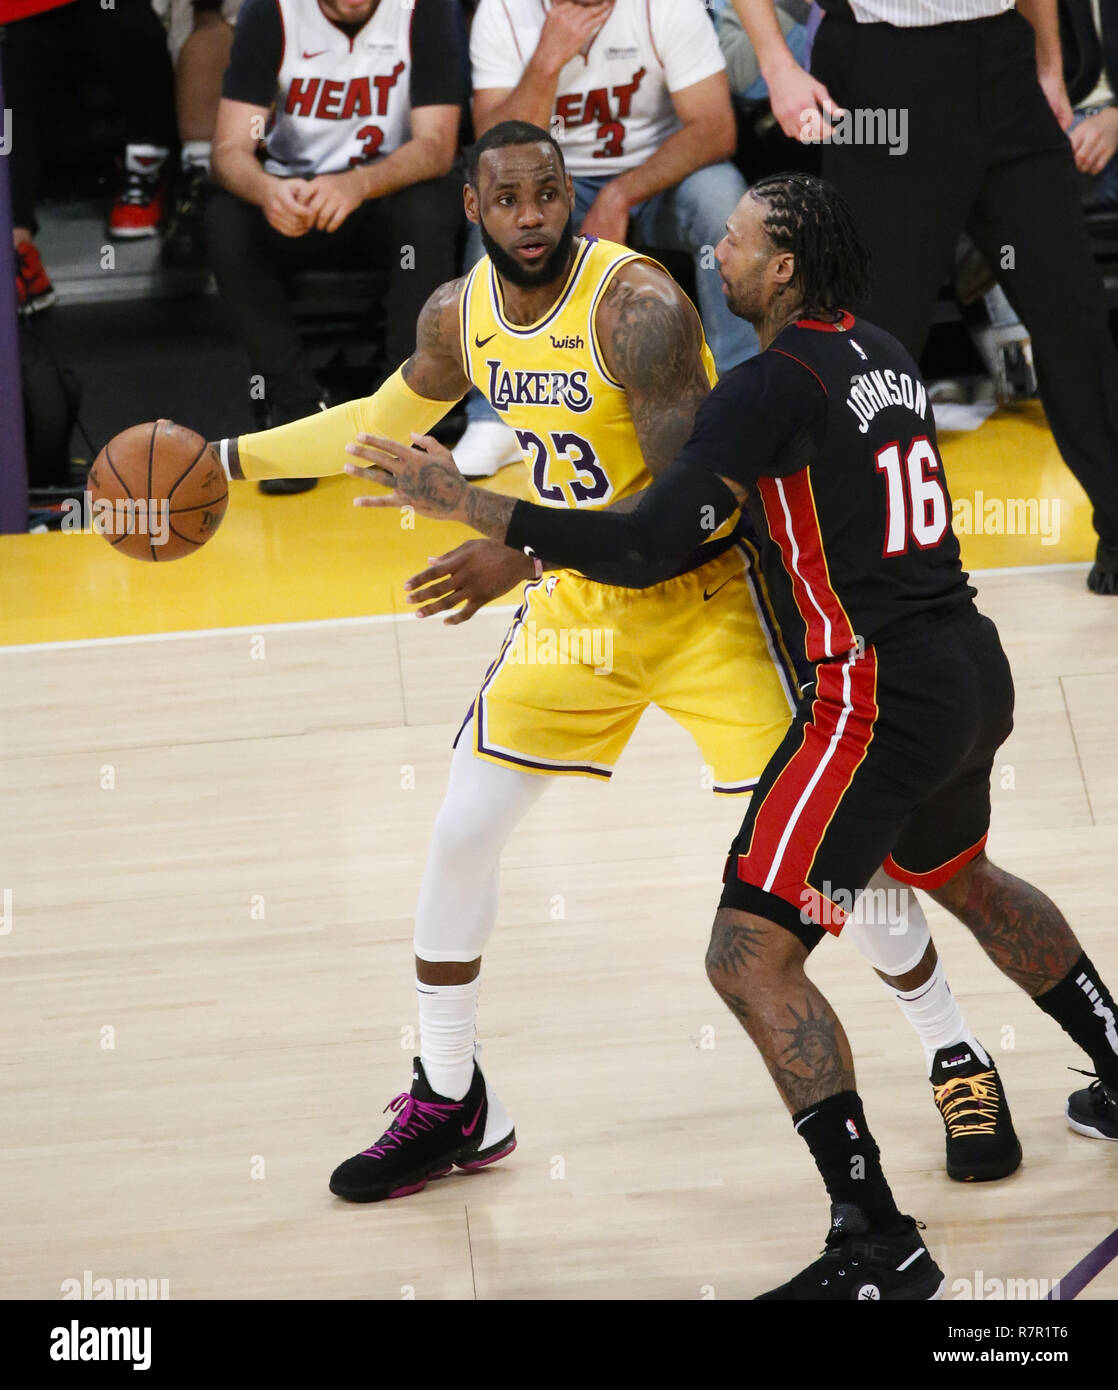 8bf41b4fe881 Los Angeles Lakers  LeBron James (23) is defended by Miami Heat s James  Johnson (16) in an NBA basketball game between Los Angeles Lakers and Miami  ...